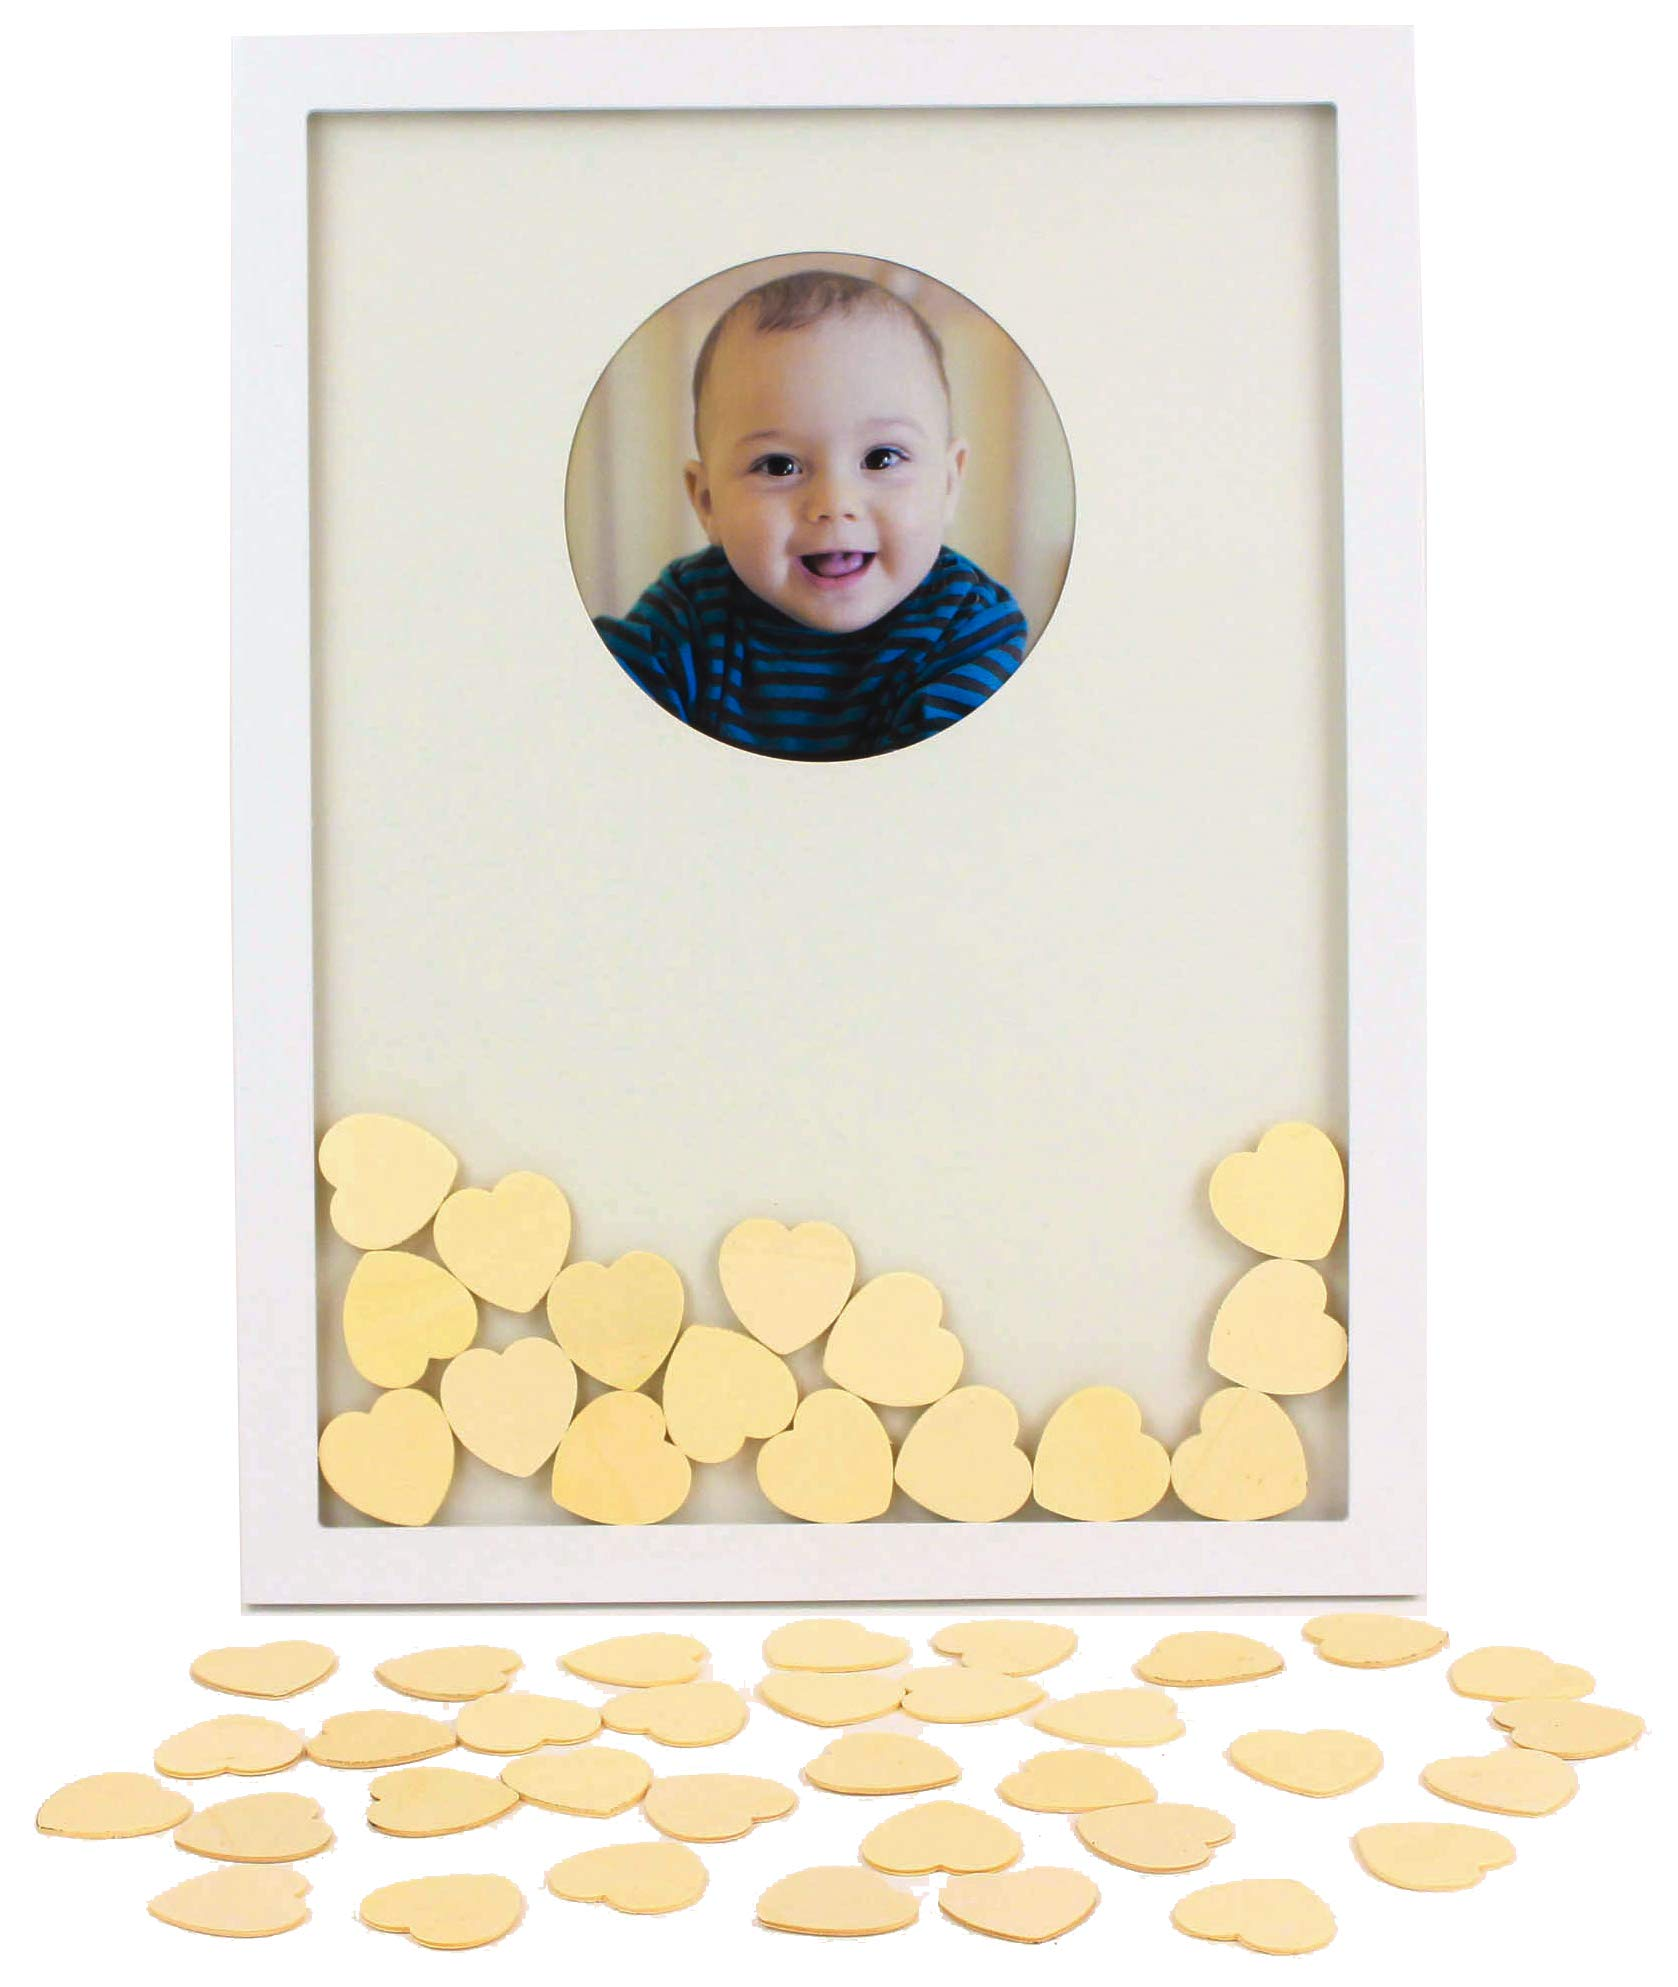 Plushible Baby Shower Guest Book 50 Hearts - Gender Reveal Party Supplies - Personalized Baby Shower Keepsake with Photo